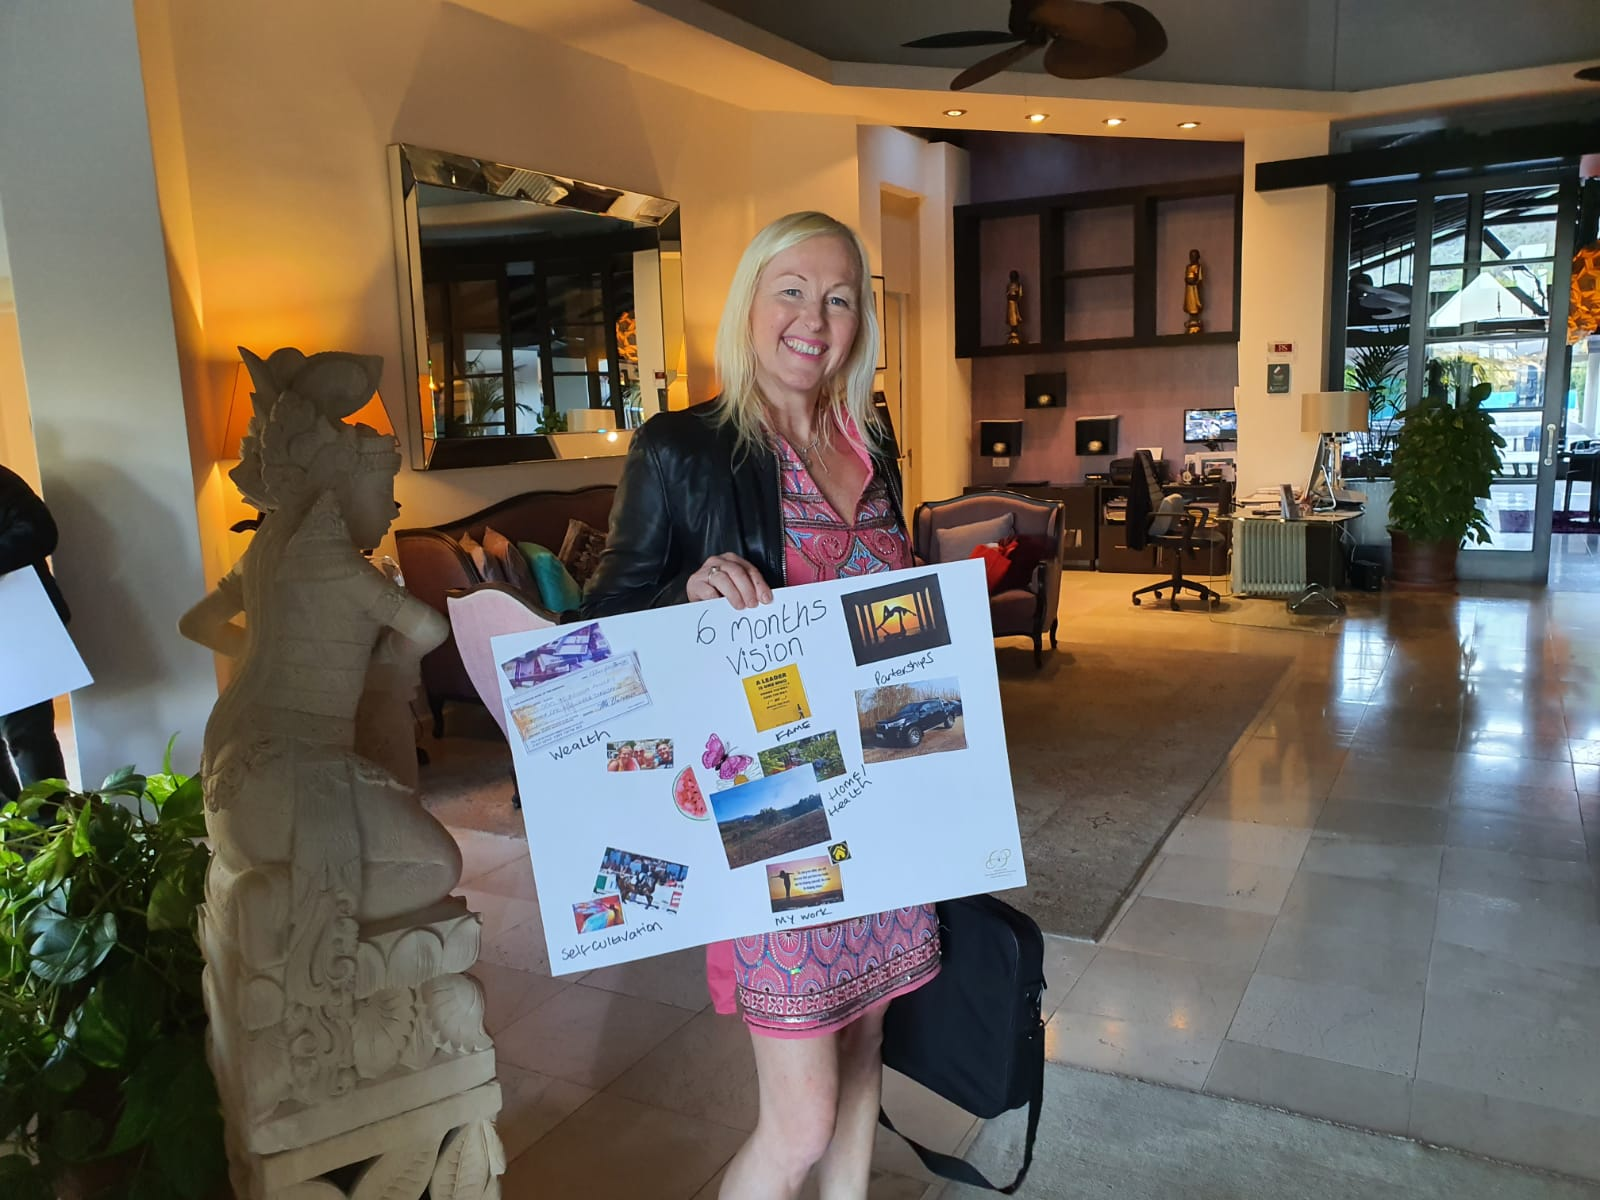 Vision board workshop presented by Infinite Love academy at Shanti som Marbella Spain